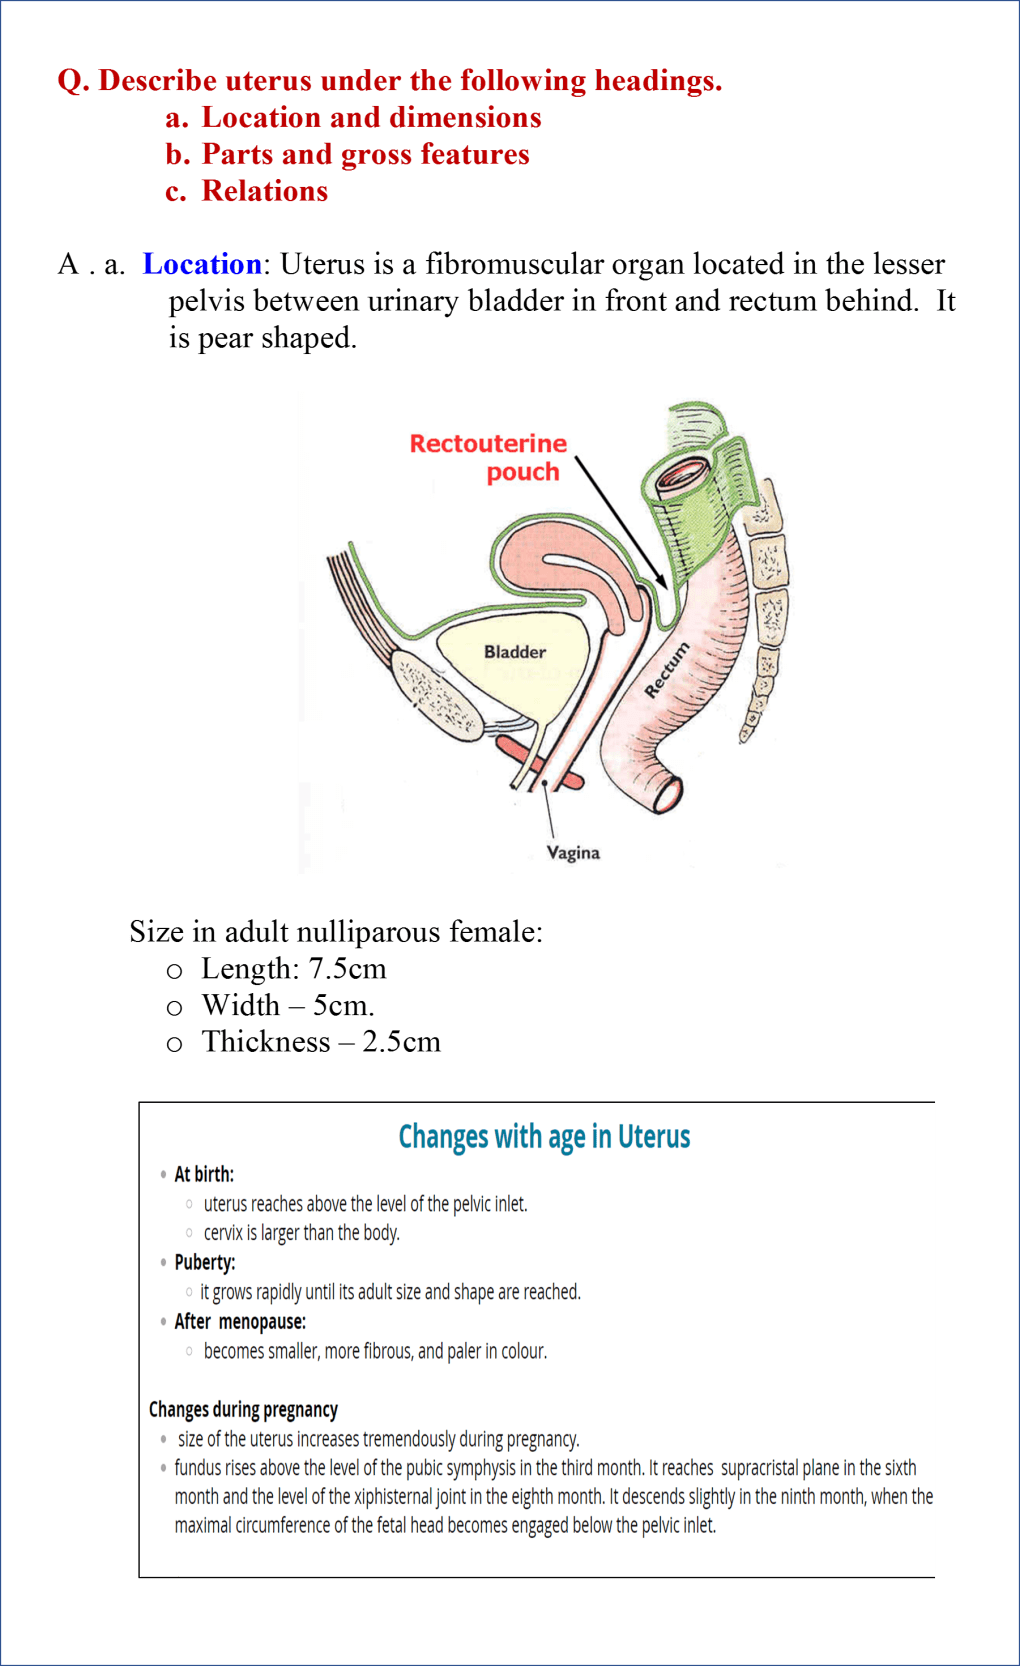 location and dimensions of uterus